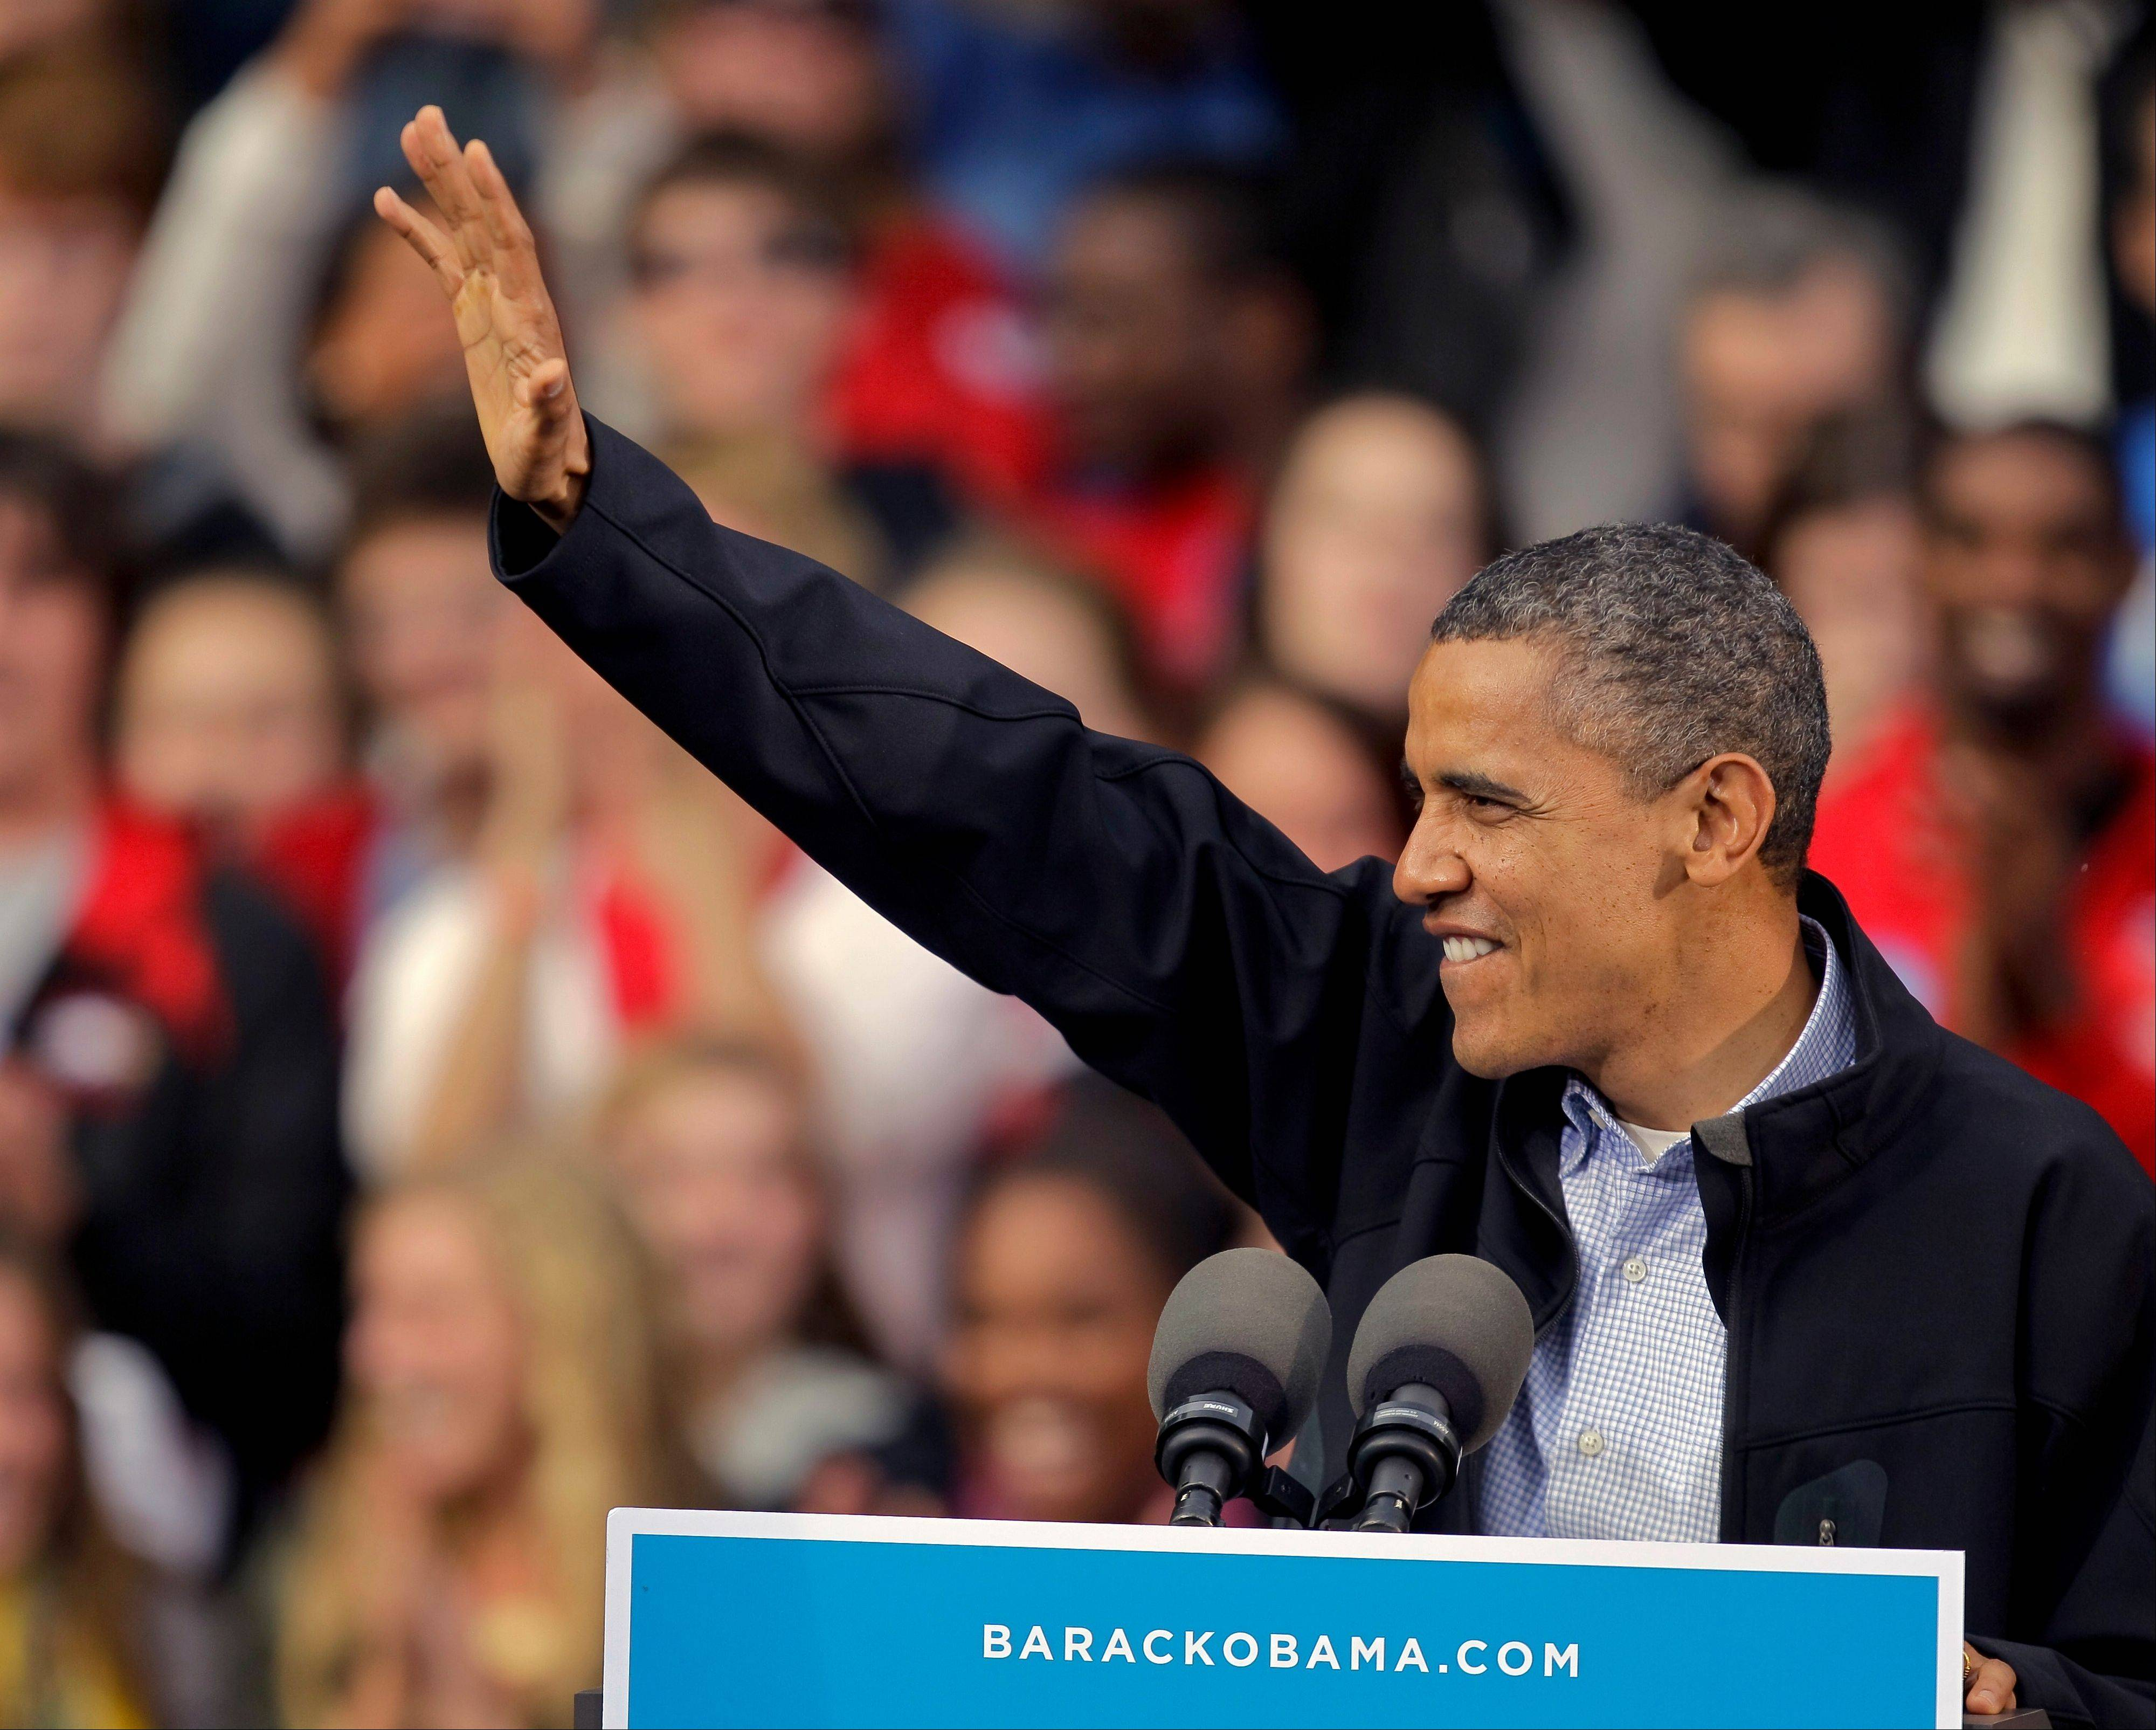 President Barack Obama acknowledges supporters at a campaign stop Thursday, Oct. 4, 2012, at the University of Wisconsin-Madison in Madison, Wis.